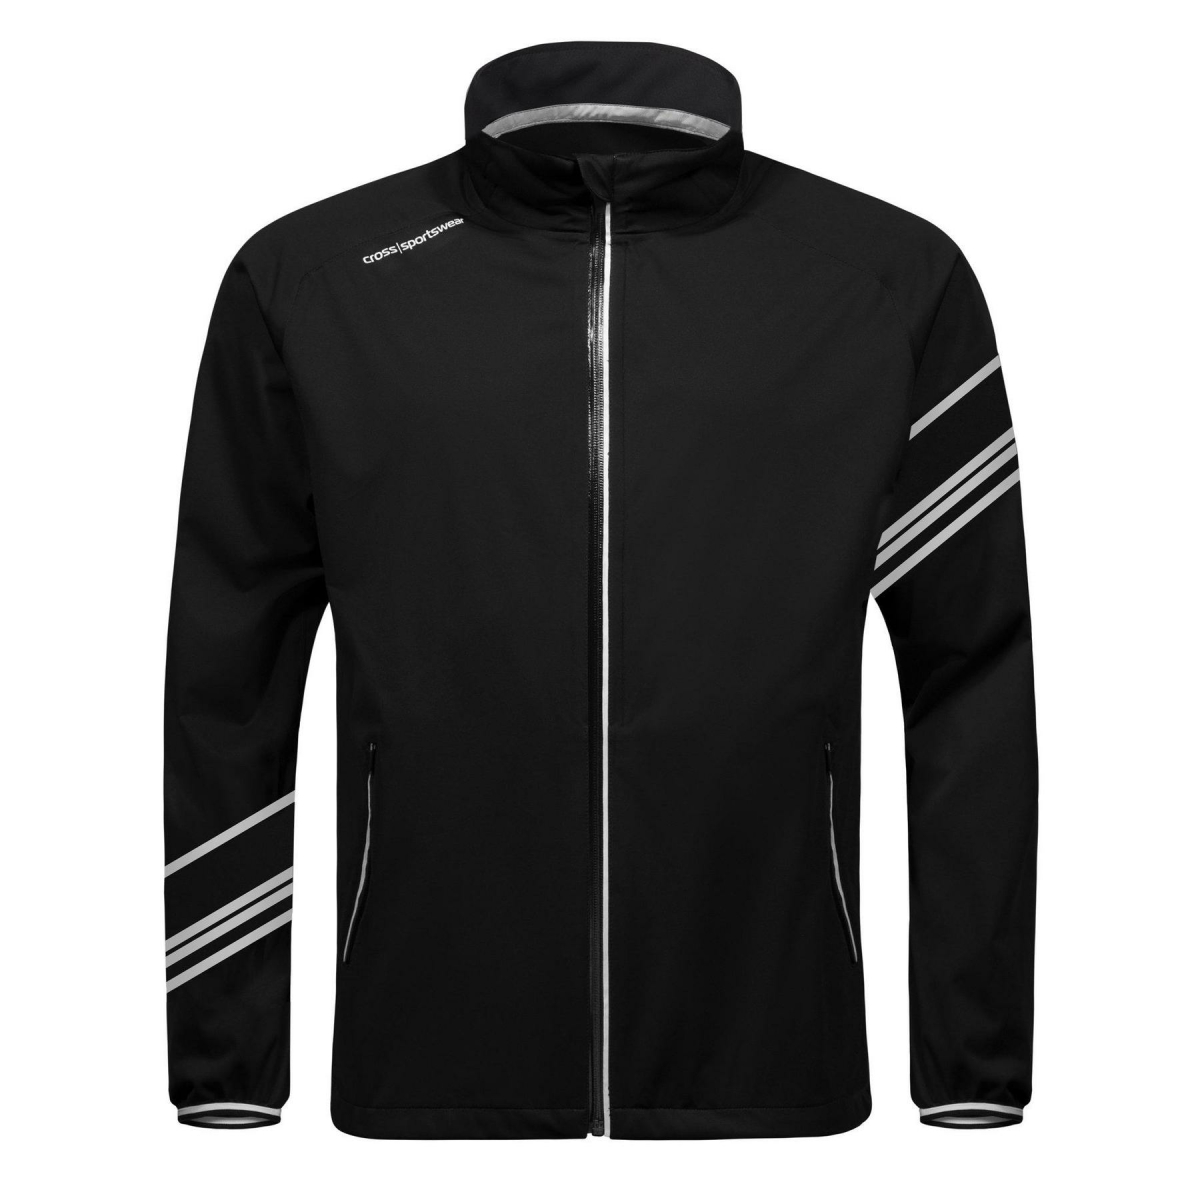 Cross Sportswear Golf M HURRICANE JACKET Regenjacke Herren